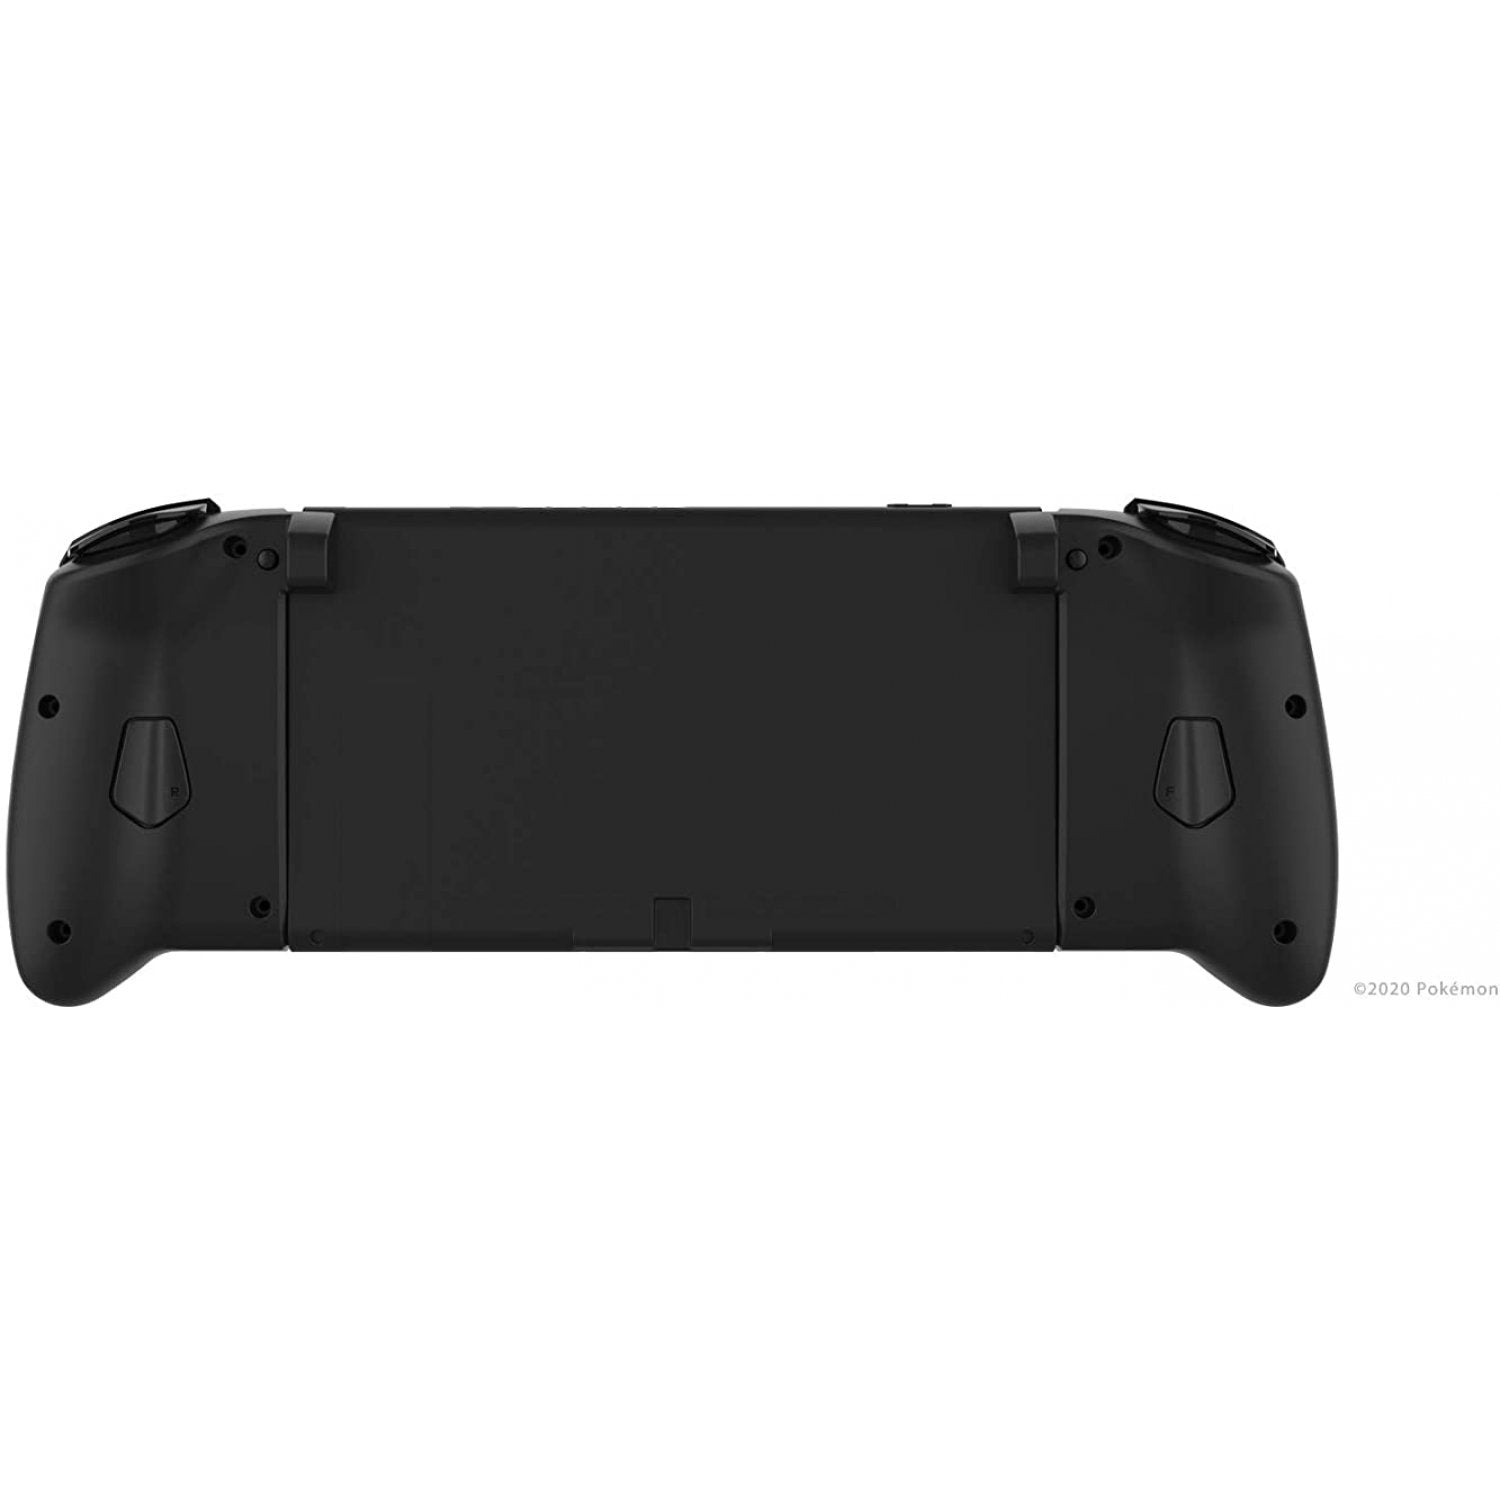 HORI Split Pad Pro - Black & Gold (NSW-295A)